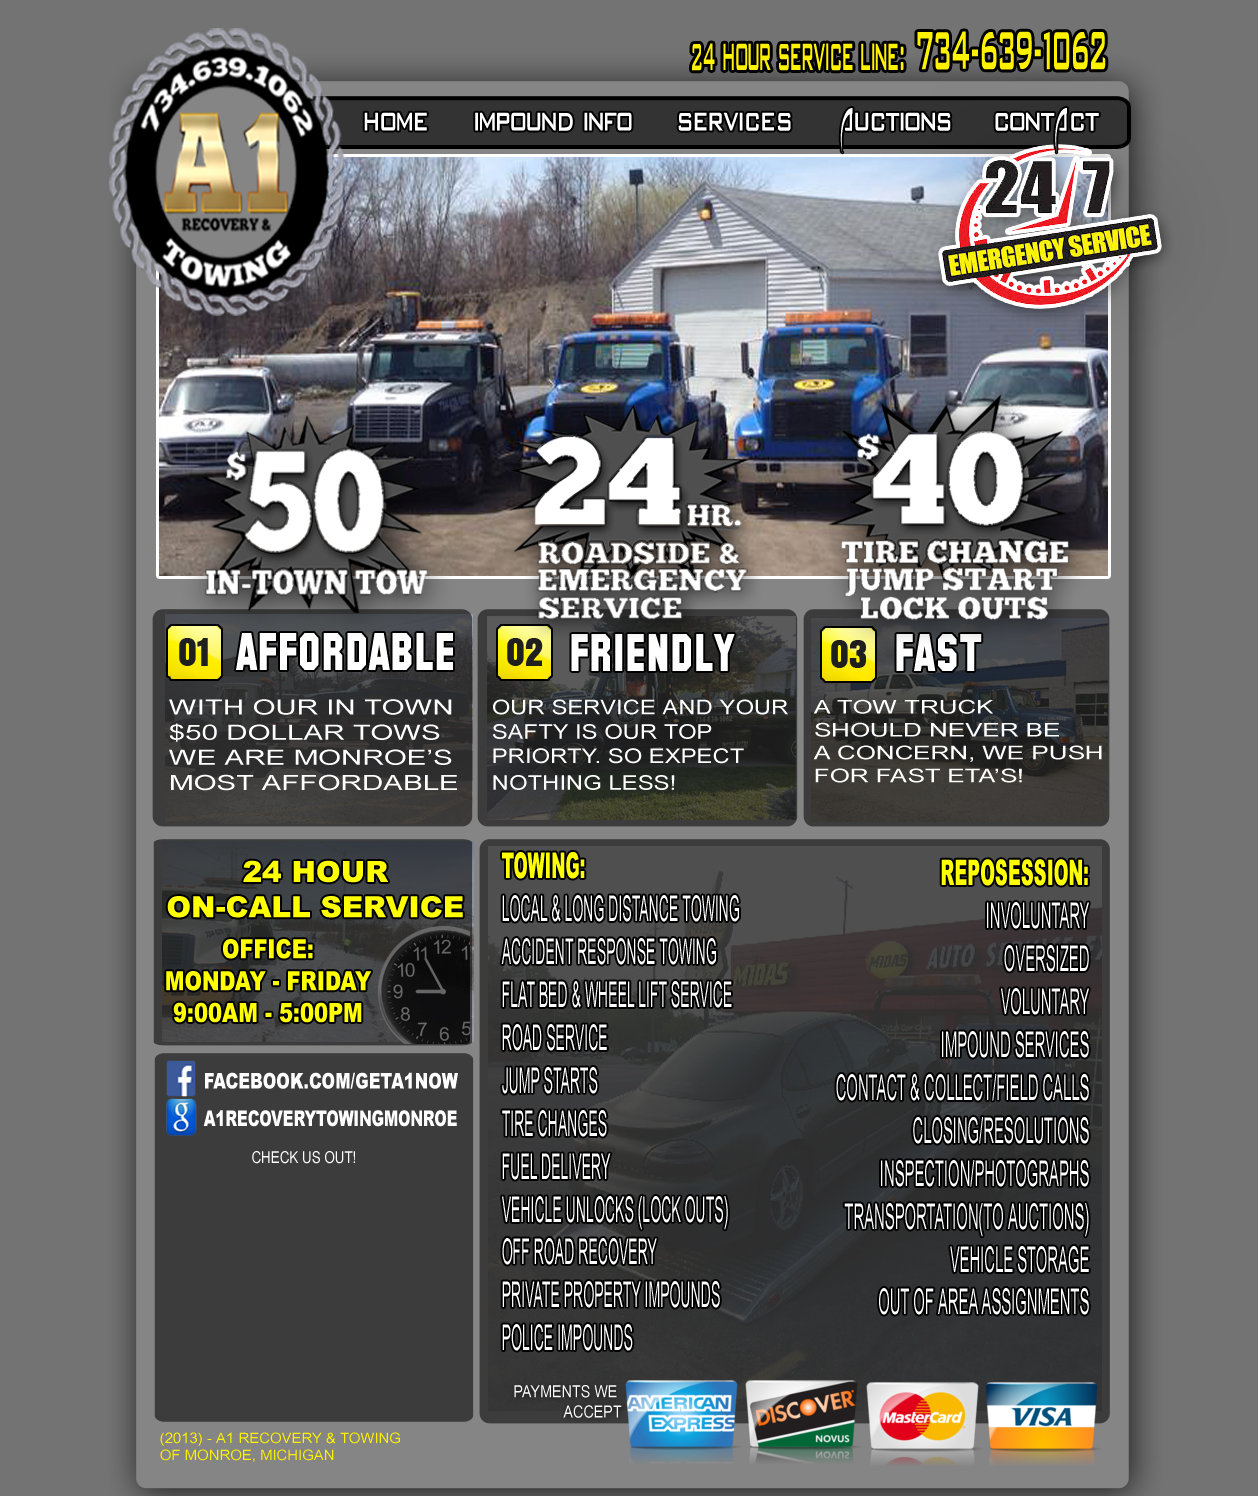 A1 Recovery and Towing - Monroe, Michigan's - Light Duty, Medium Duty and Heavy Duty Wrecker Service, Towing, Recovery and Roadside Service Provider - Tire ...